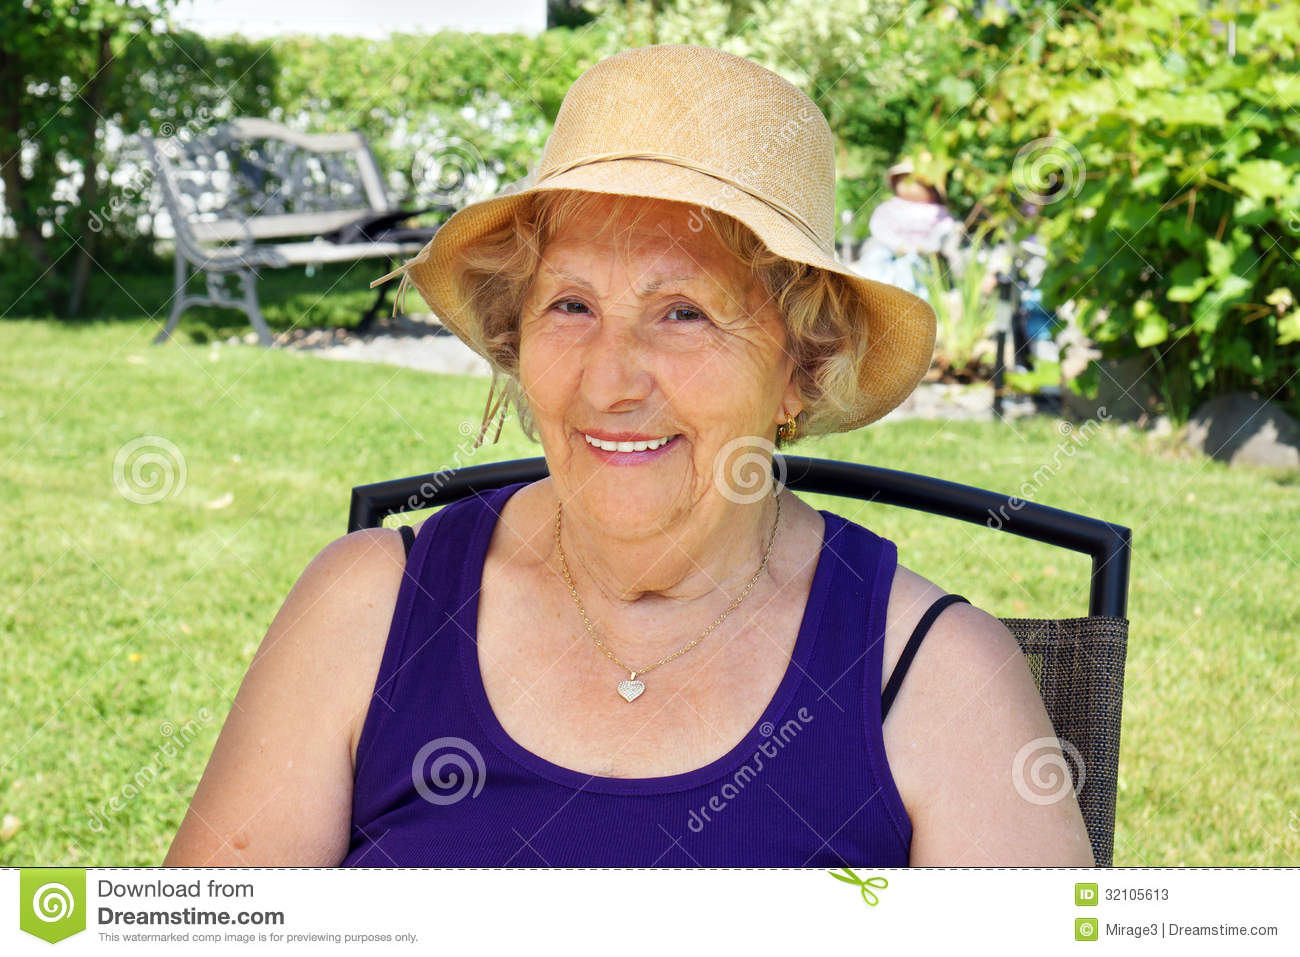 Senior woman with straw hat in the shade enjoying summer